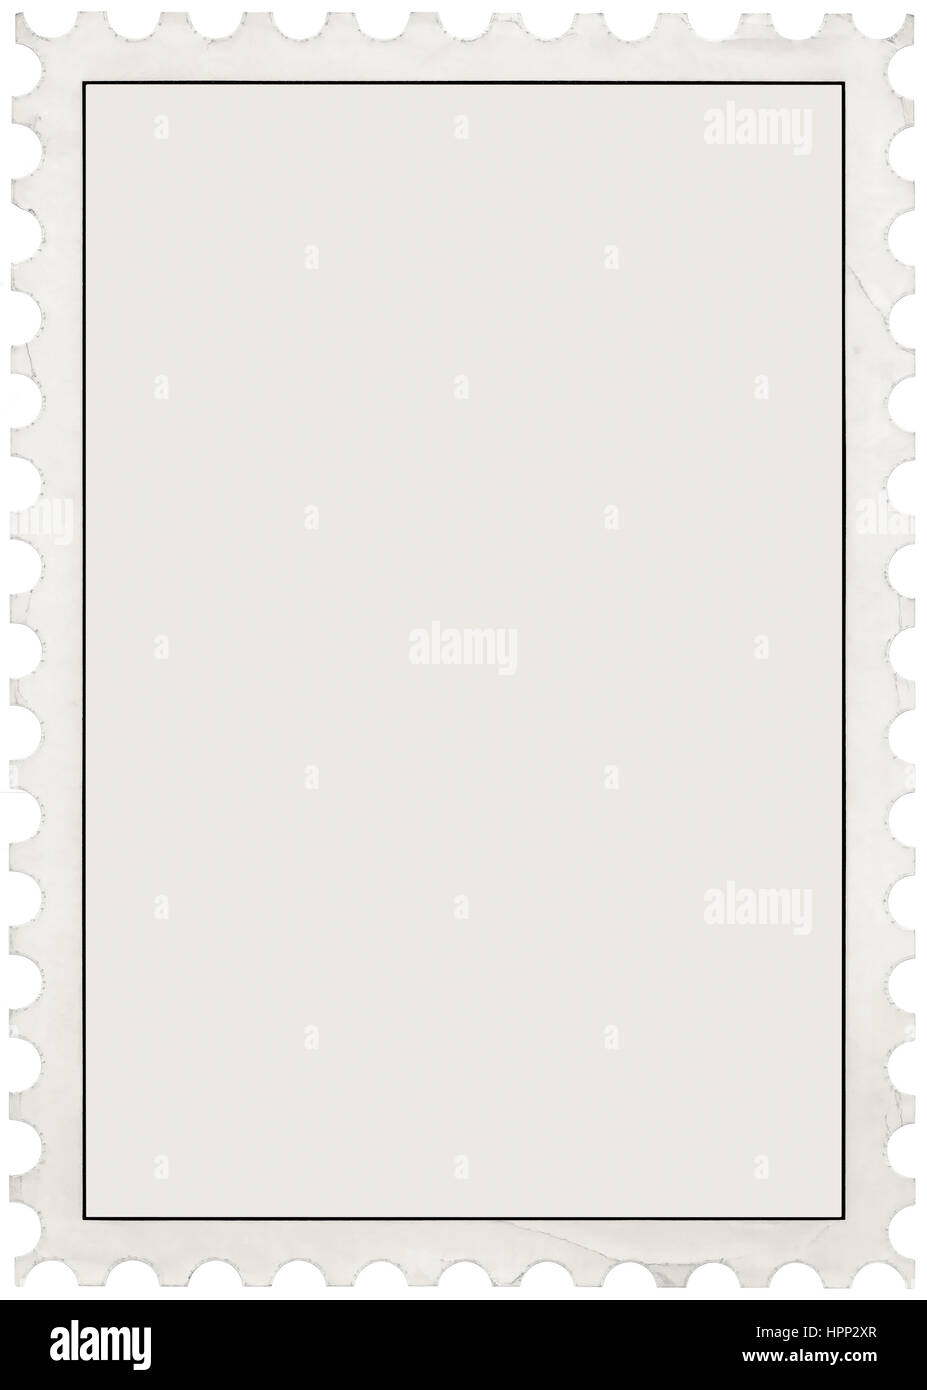 blank empty postage stamp template cutout stock photo 134480271 alamy